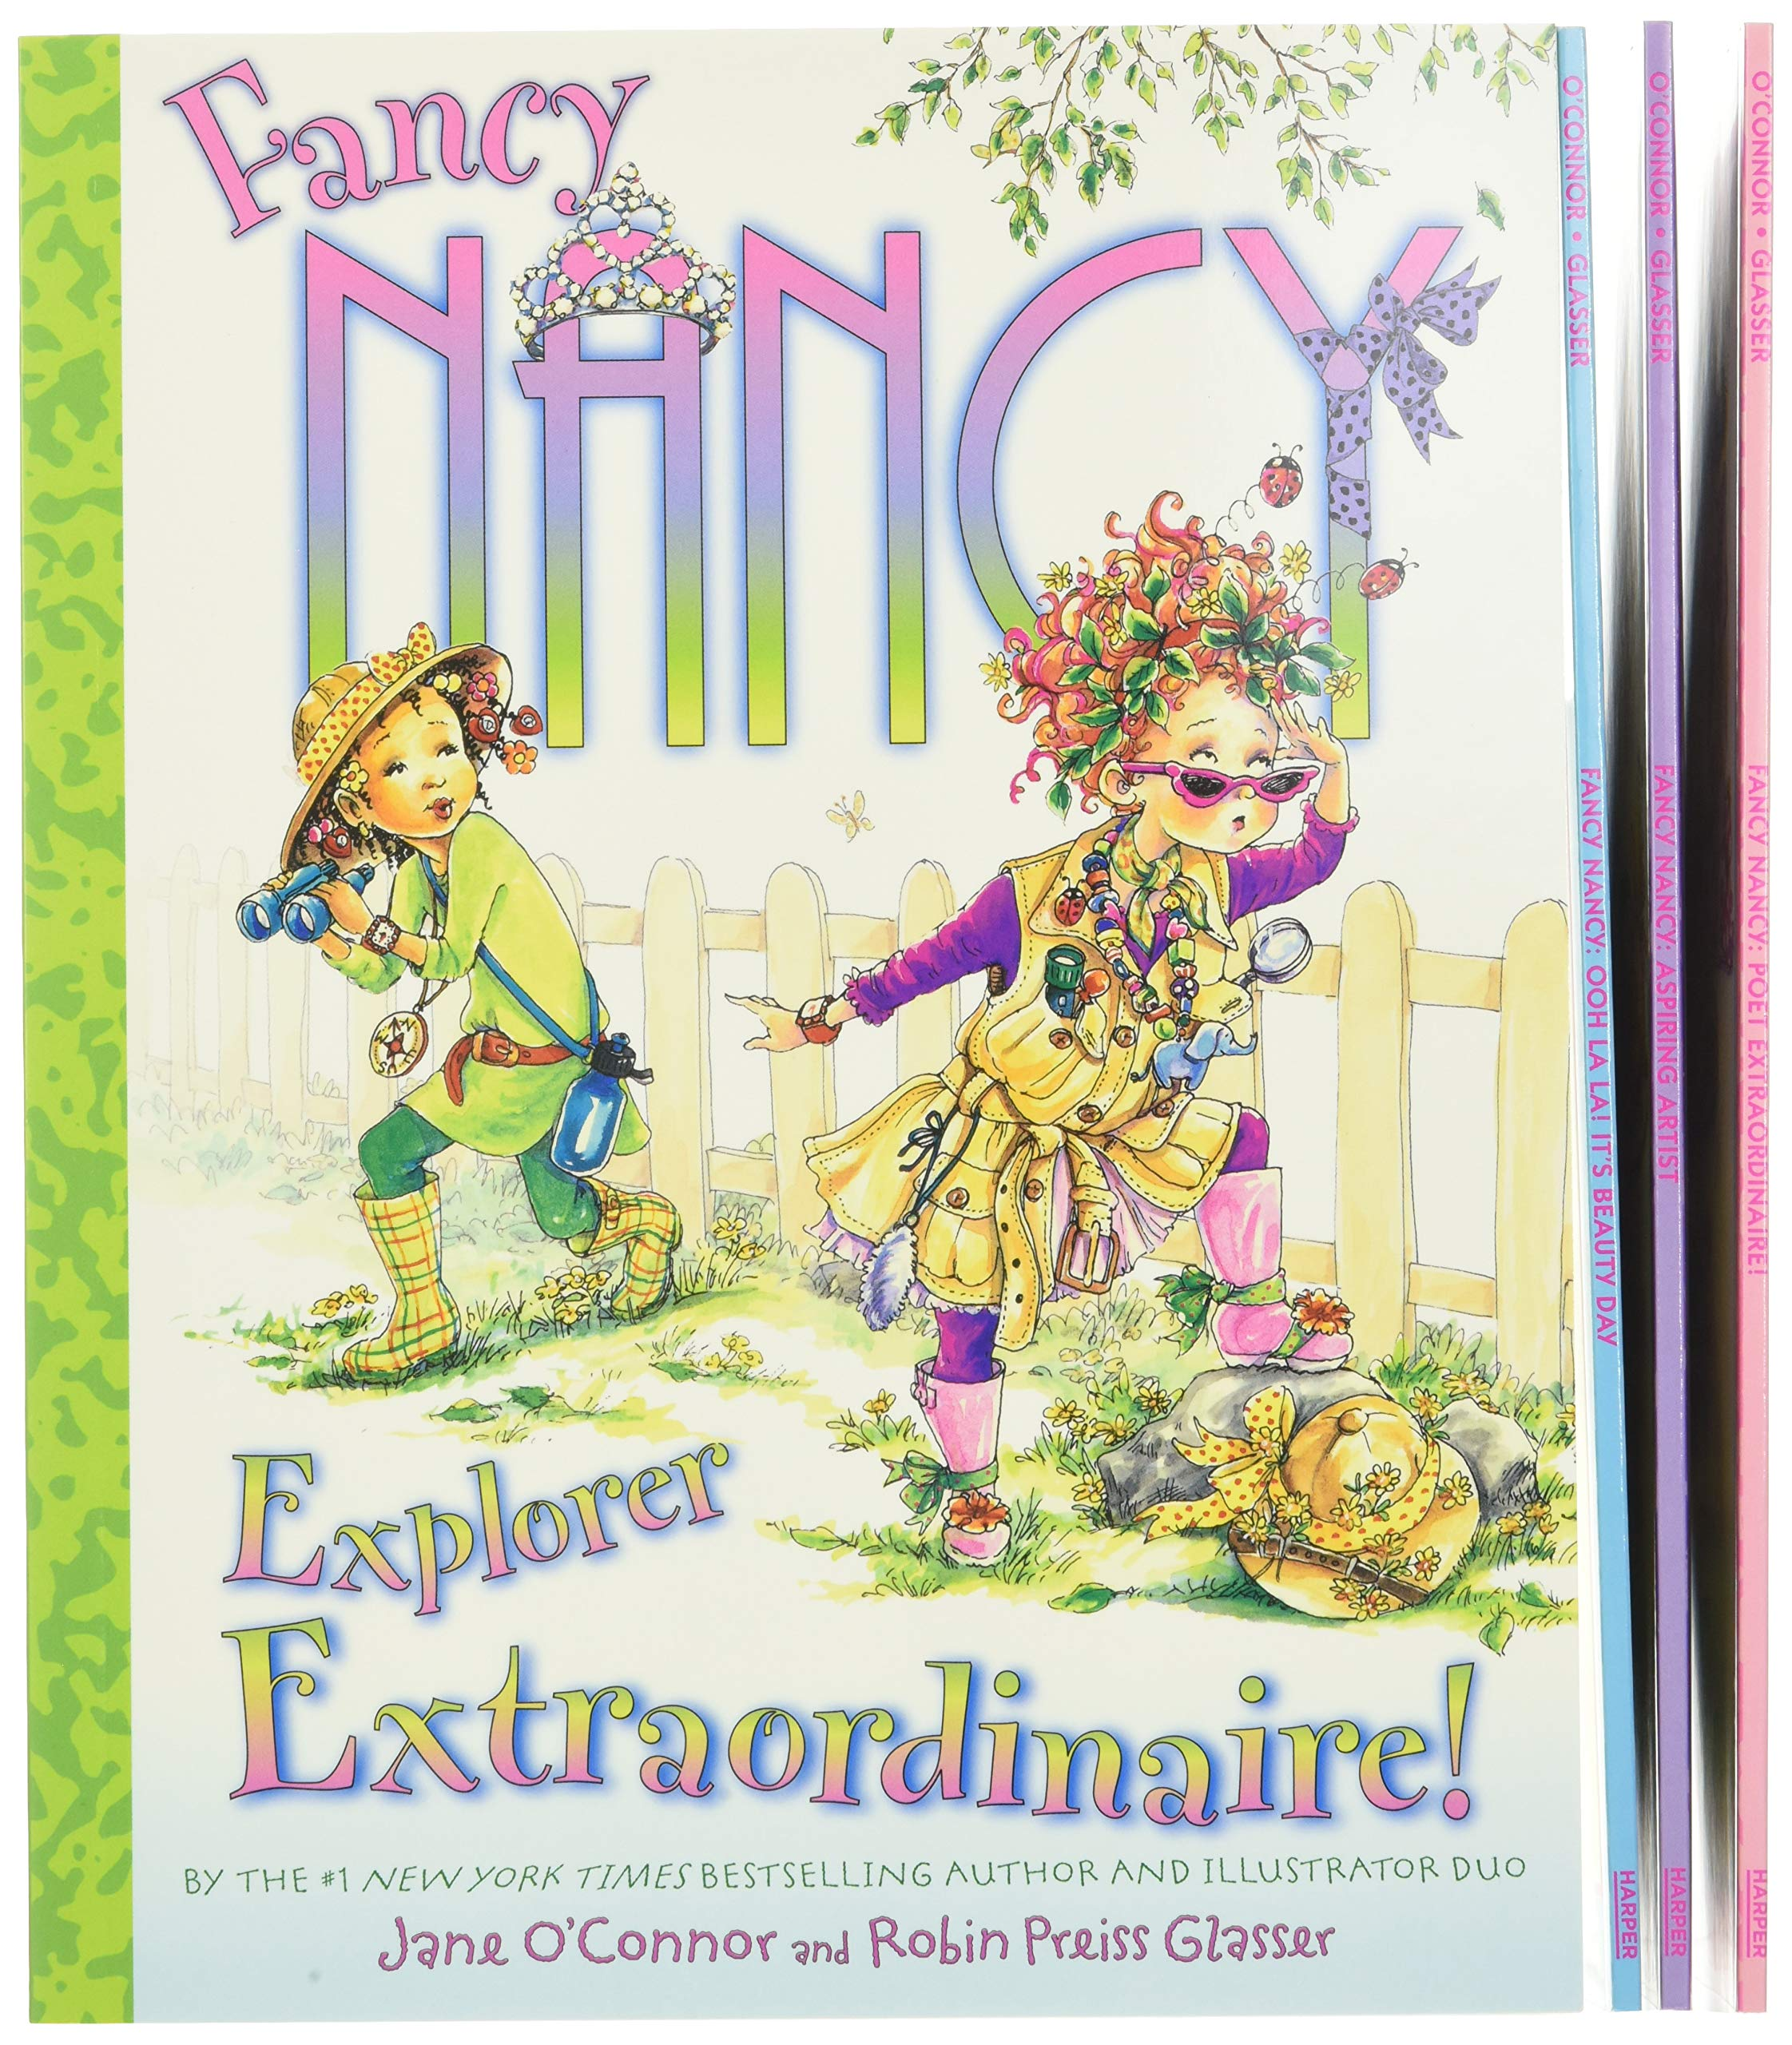 Fancy Nancy The Wonderful World Of Fancy Nancy 4 Books In 1 Box Set O Connor Jane Glasser Robin Preiss 9780062210609 Amazon Com Books